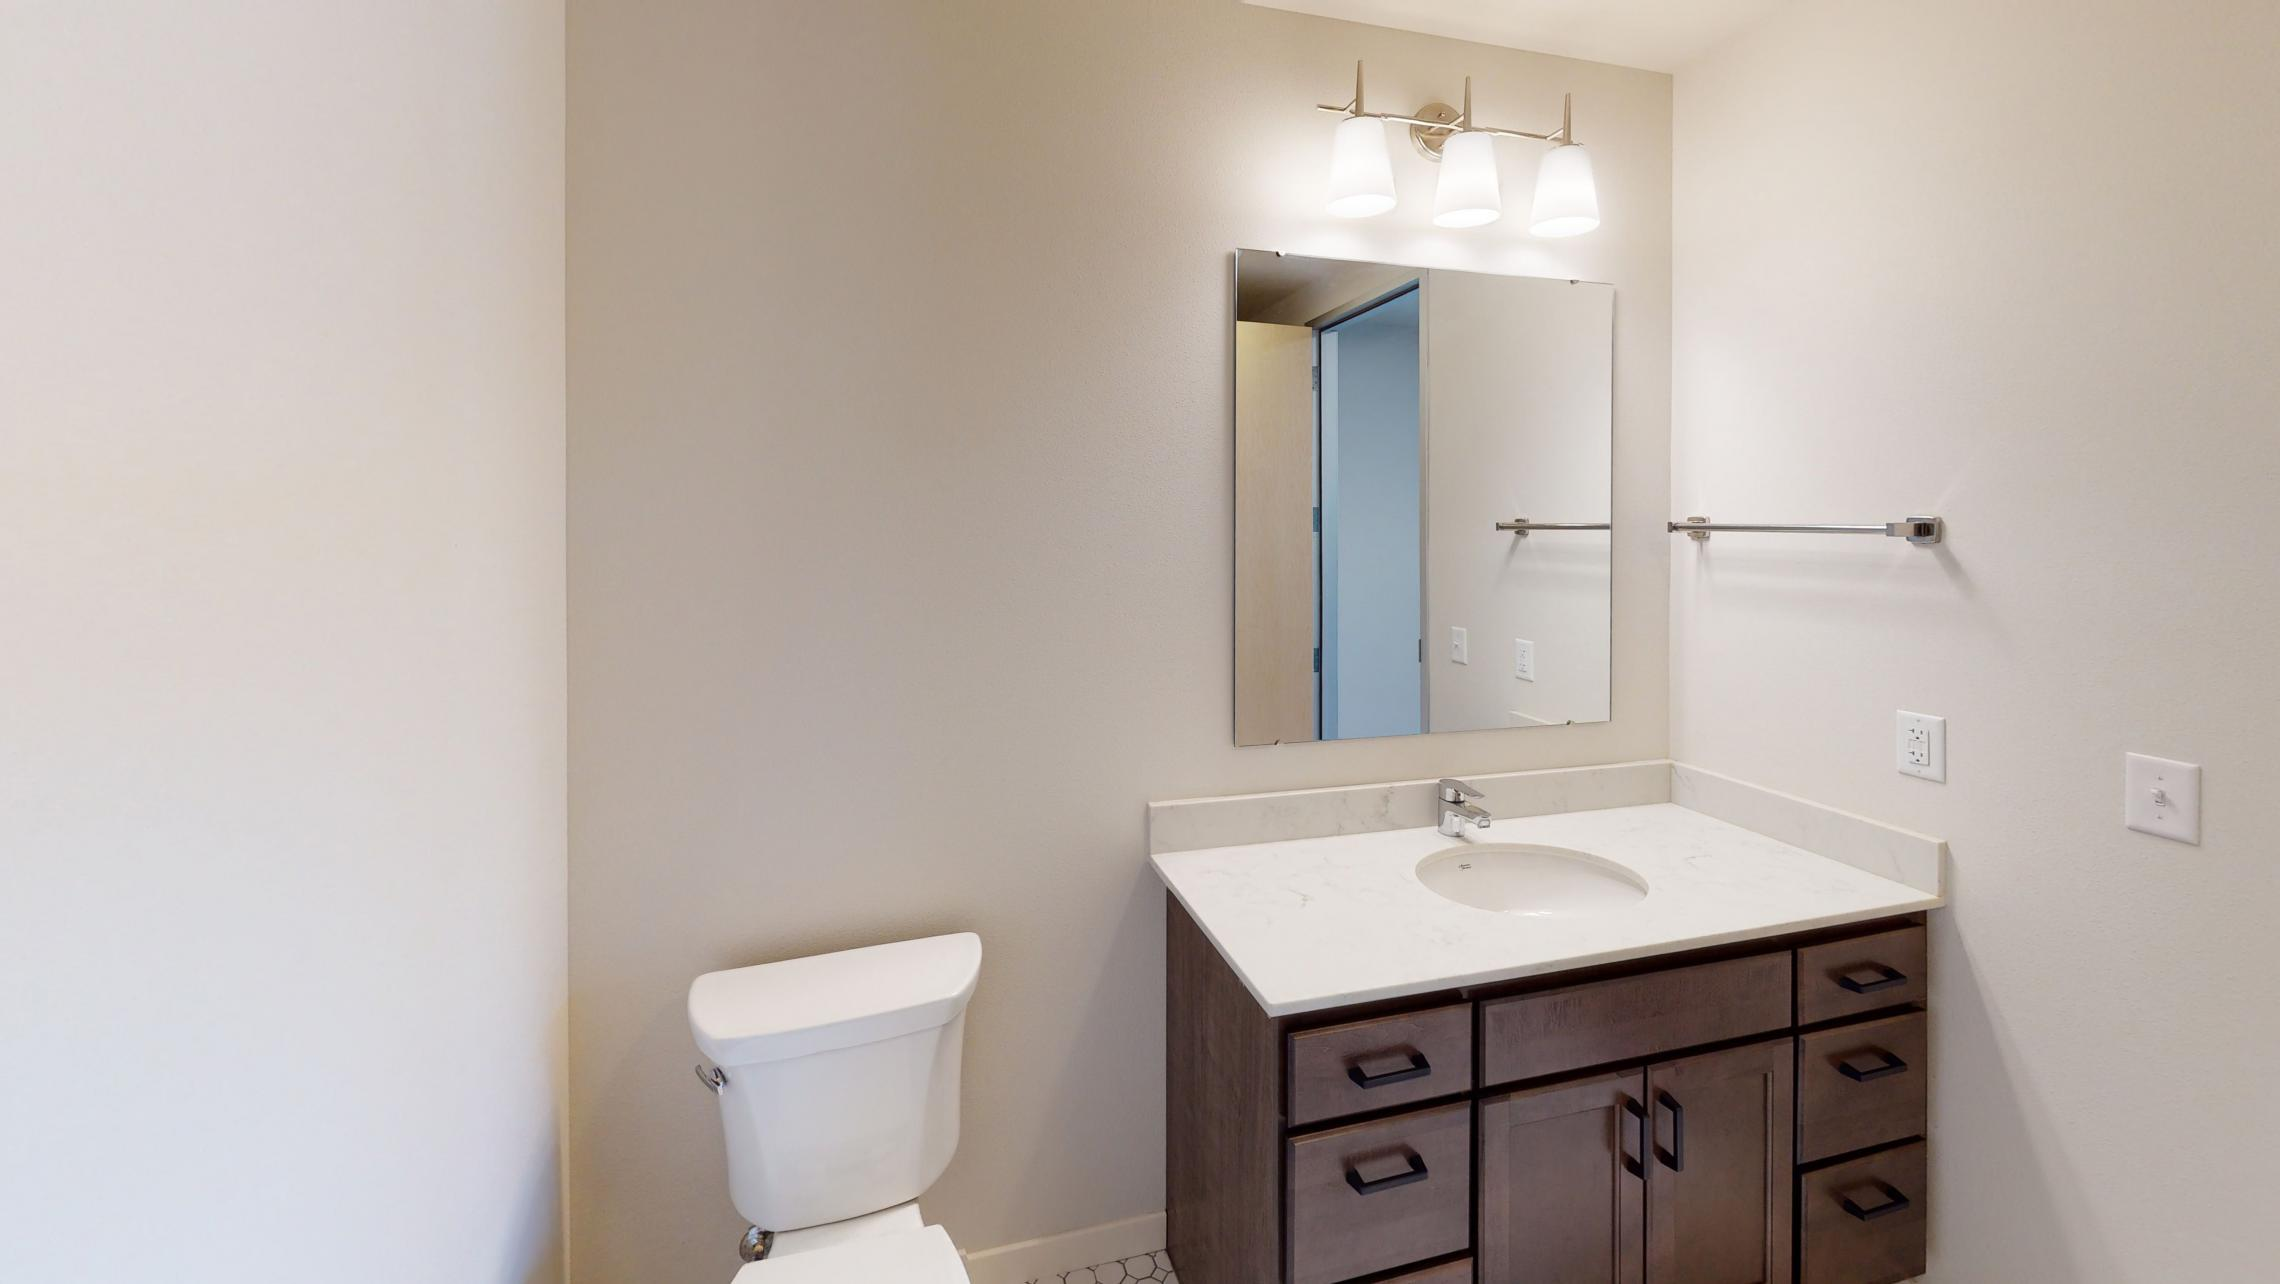 Quarter-Row-at-The-Yards-Apartment-216-Three-Bedroom-Bathroom-Living-Kitchen-Laundry-Fitness-Courtyard-Lounge-Modern-Upscale-Downtown-Madison-Capitol-Bike-Trail-Lake-Lifestyle